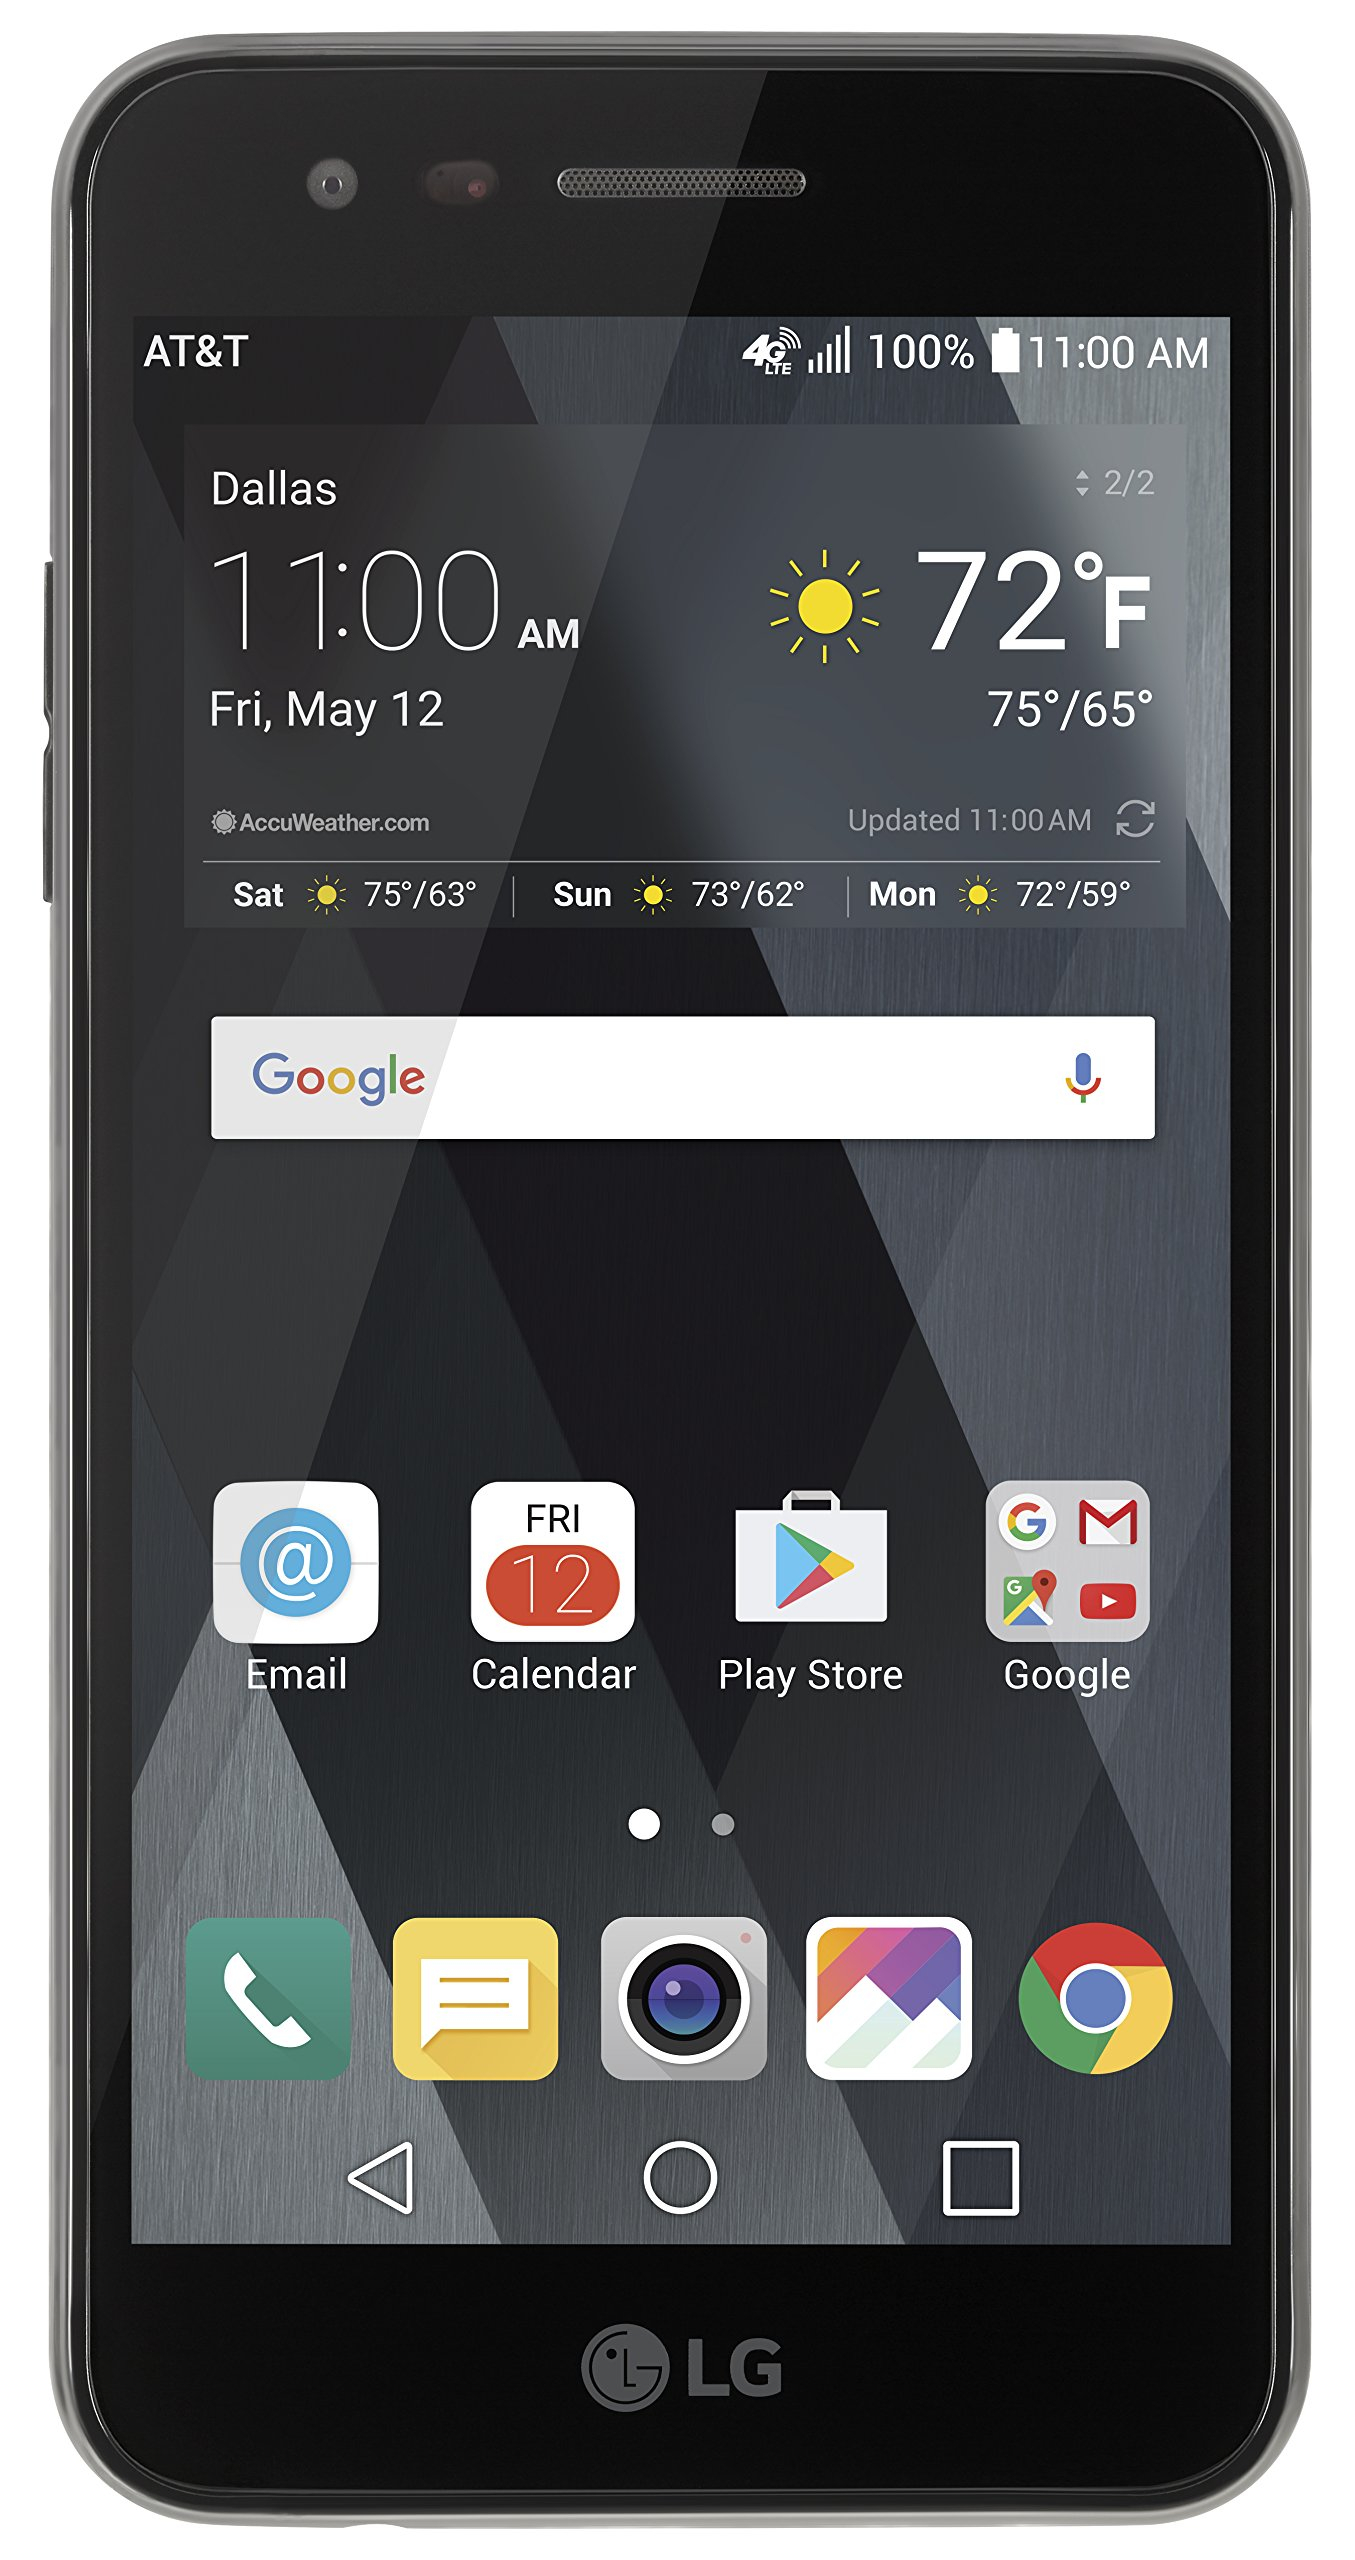 AT&T GoPhone LG Phoenix 3 4G LTE with 16GB Memory Prepaid Cell Phone - Black by AT&T GoPhone